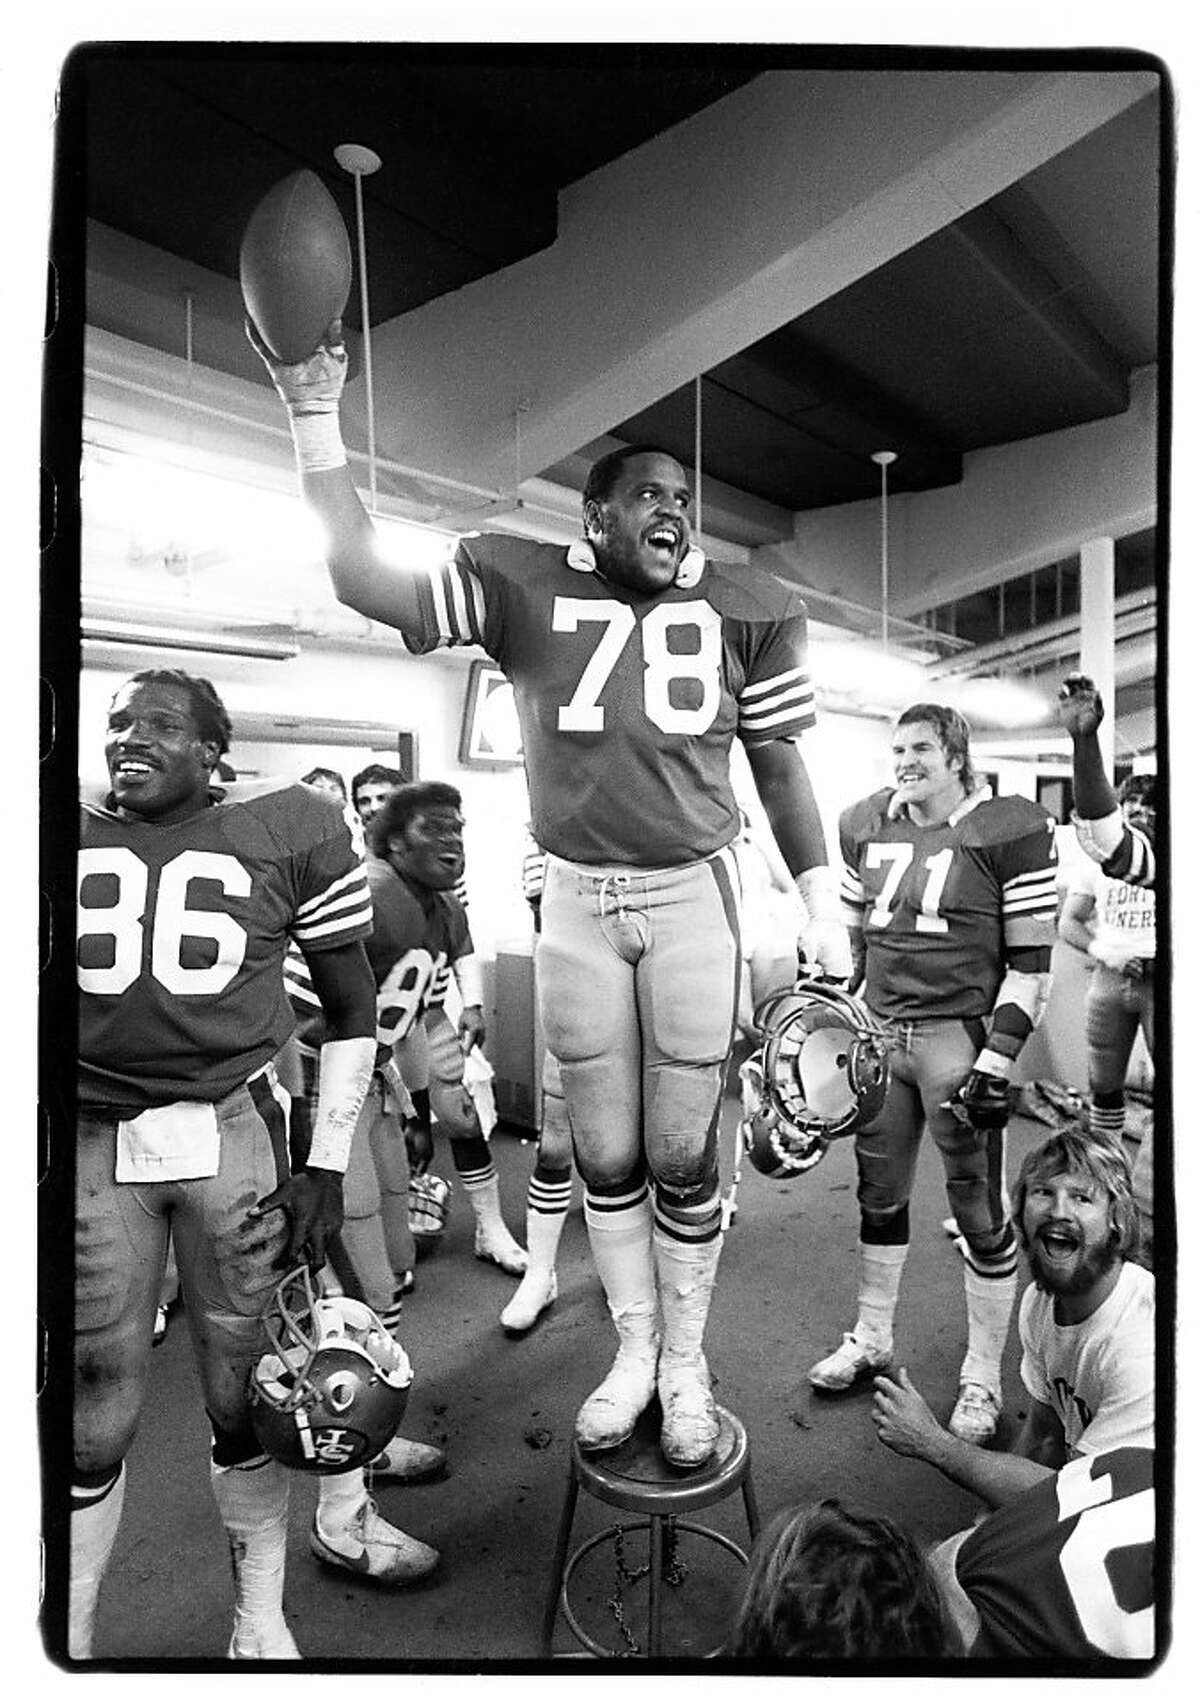 SAN FRANCISCO - DECEMBER 7: Defensive tackle Archie Reese #78 of the San Francisco 49ers holds the game ball in the locker room following the game against the New Orleans Saints at Candlestick Park on December 7, 1980 in San Francisco, California. The Niners came back from a 35-7 deficit to win 38-35 in the greatest regular season comeback in NFL history. (Photo by Michael Zagaris/Getty Images)